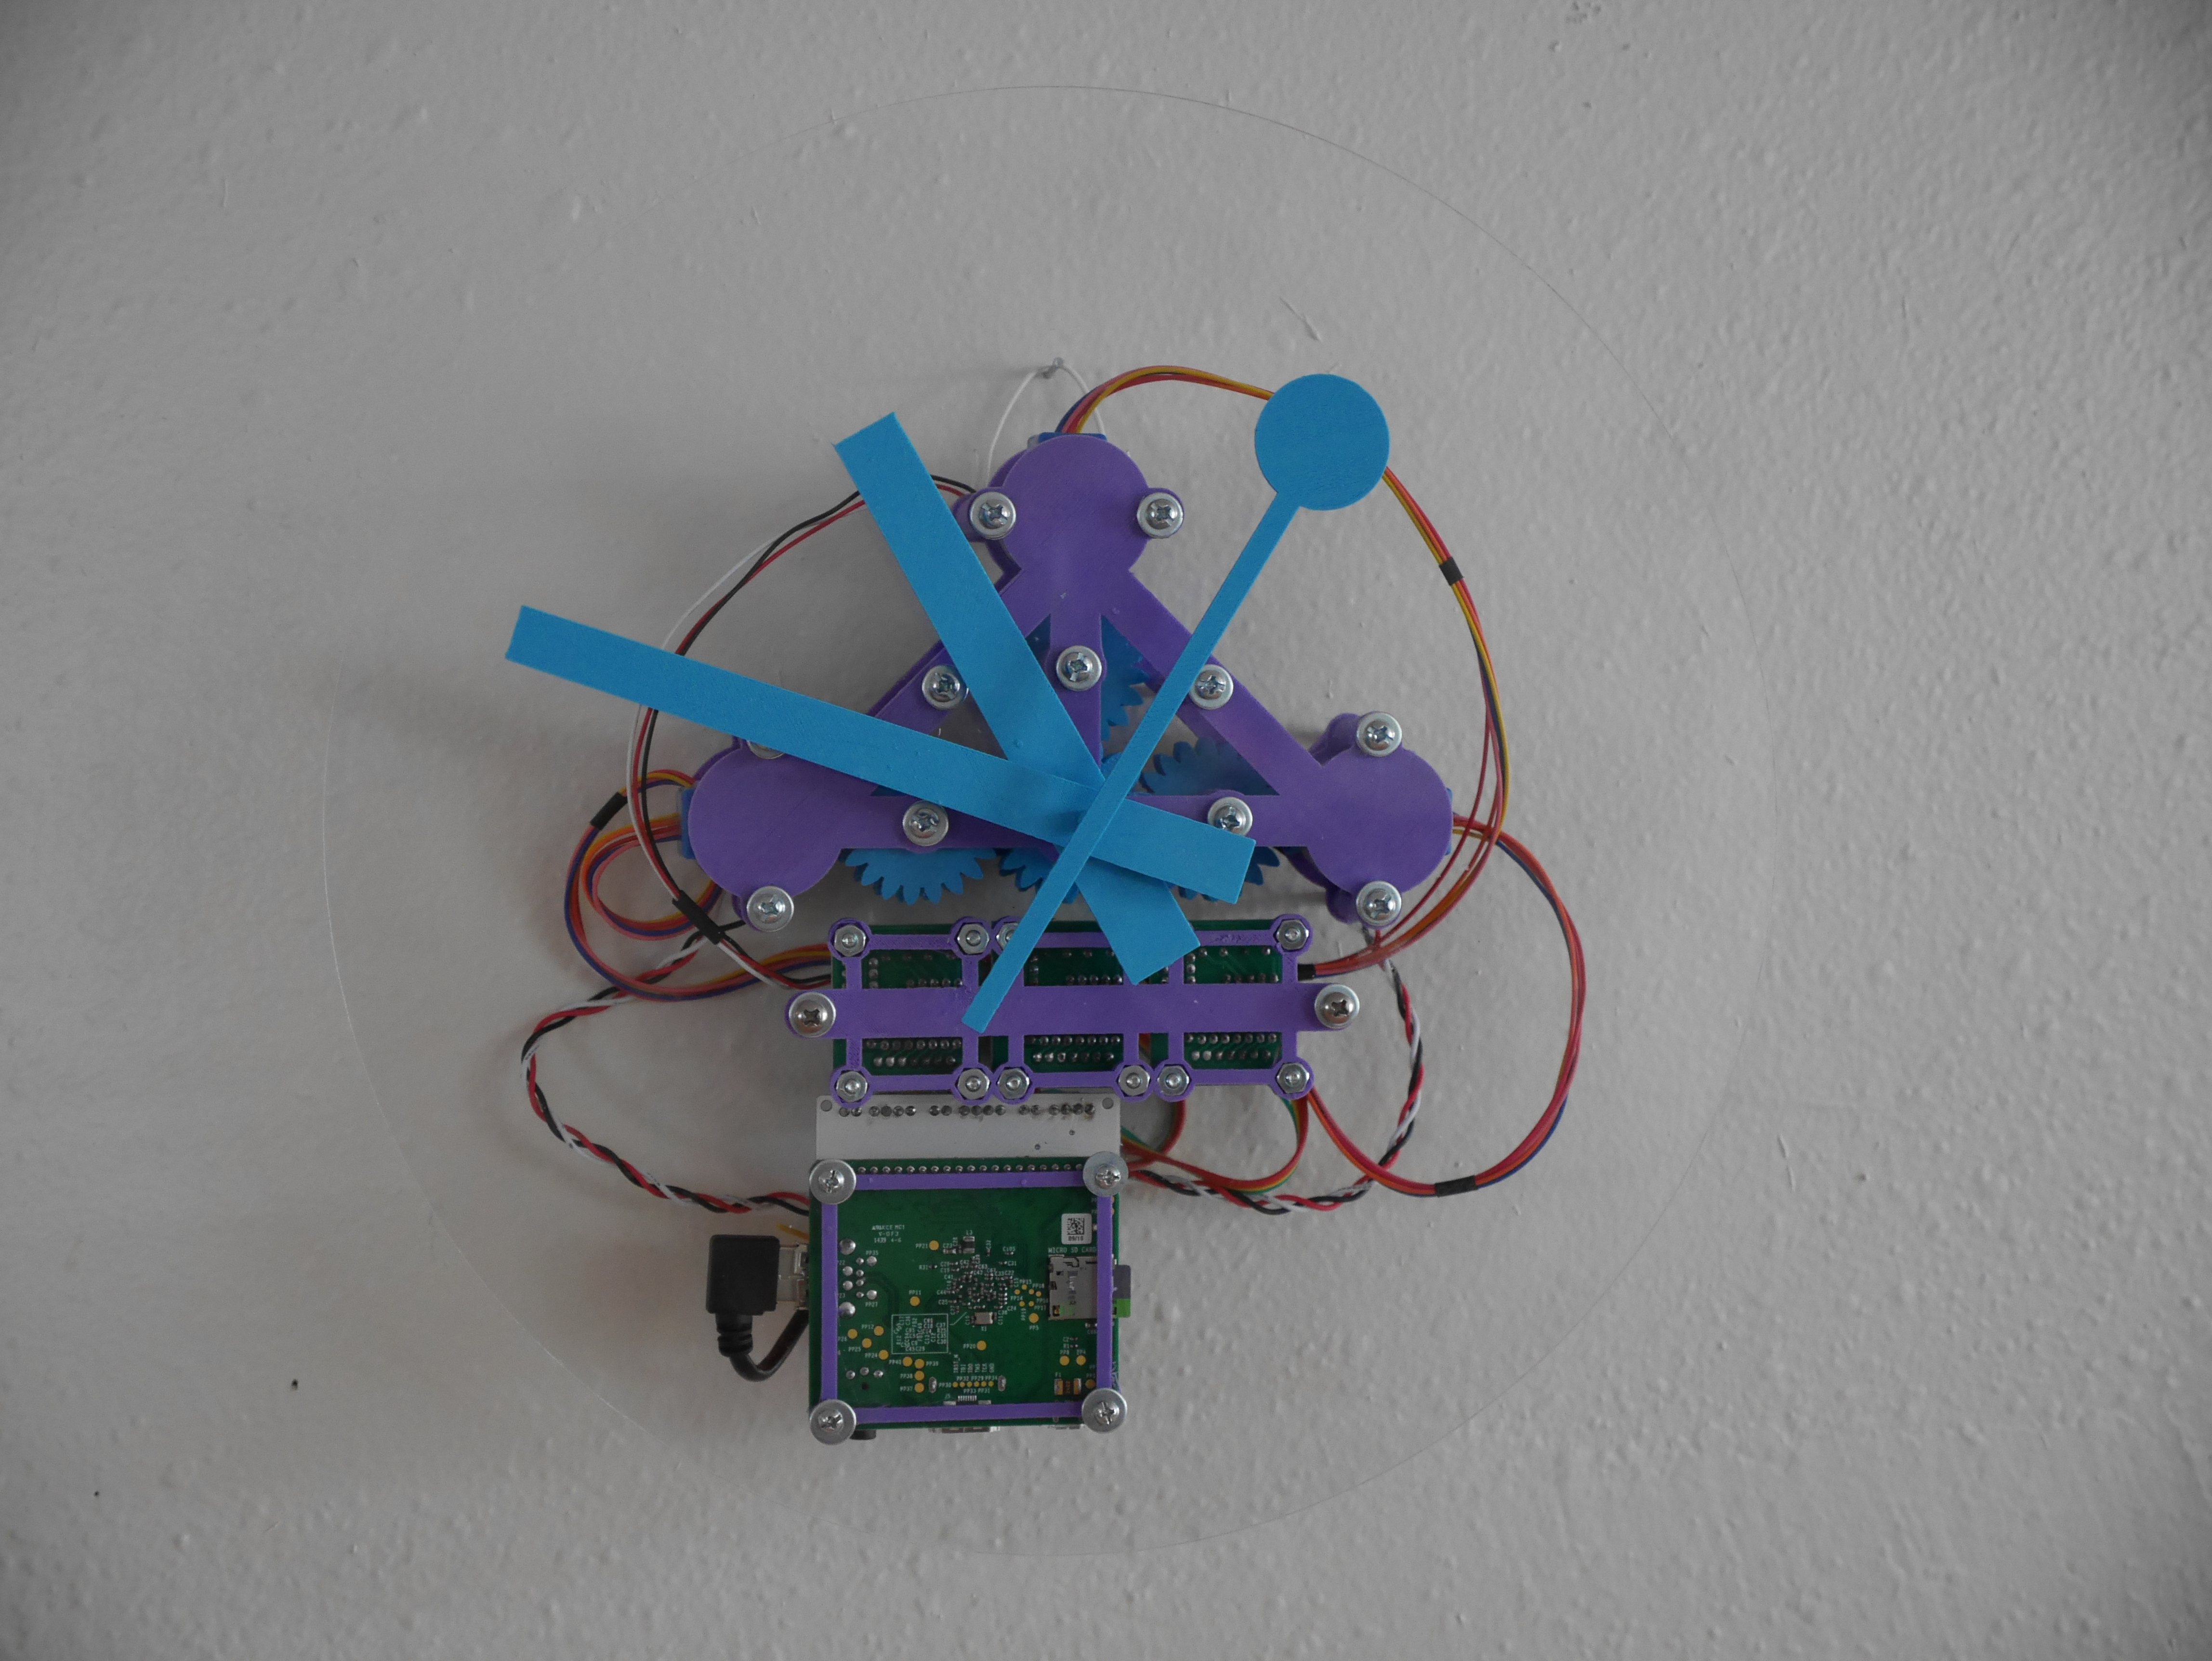 Final clock. Translucent body showing all components including gears and Raspberry Pi.